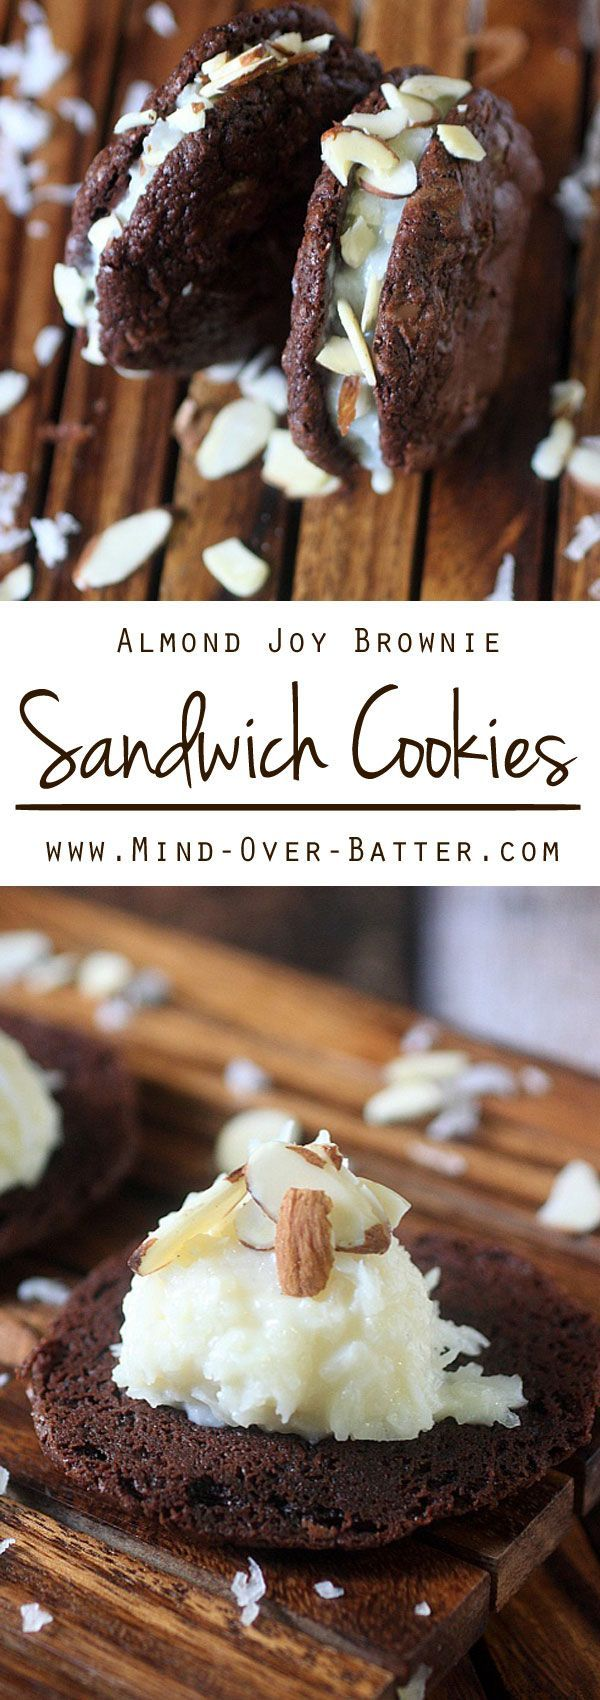 A Sweet coconut and almond filling is sandwiched between two soft baked brownie cookies. If there is ever a cookie you need to try – These Almond Joy Brownie Sandwich Cookies are the one! By @mindovrbatterny